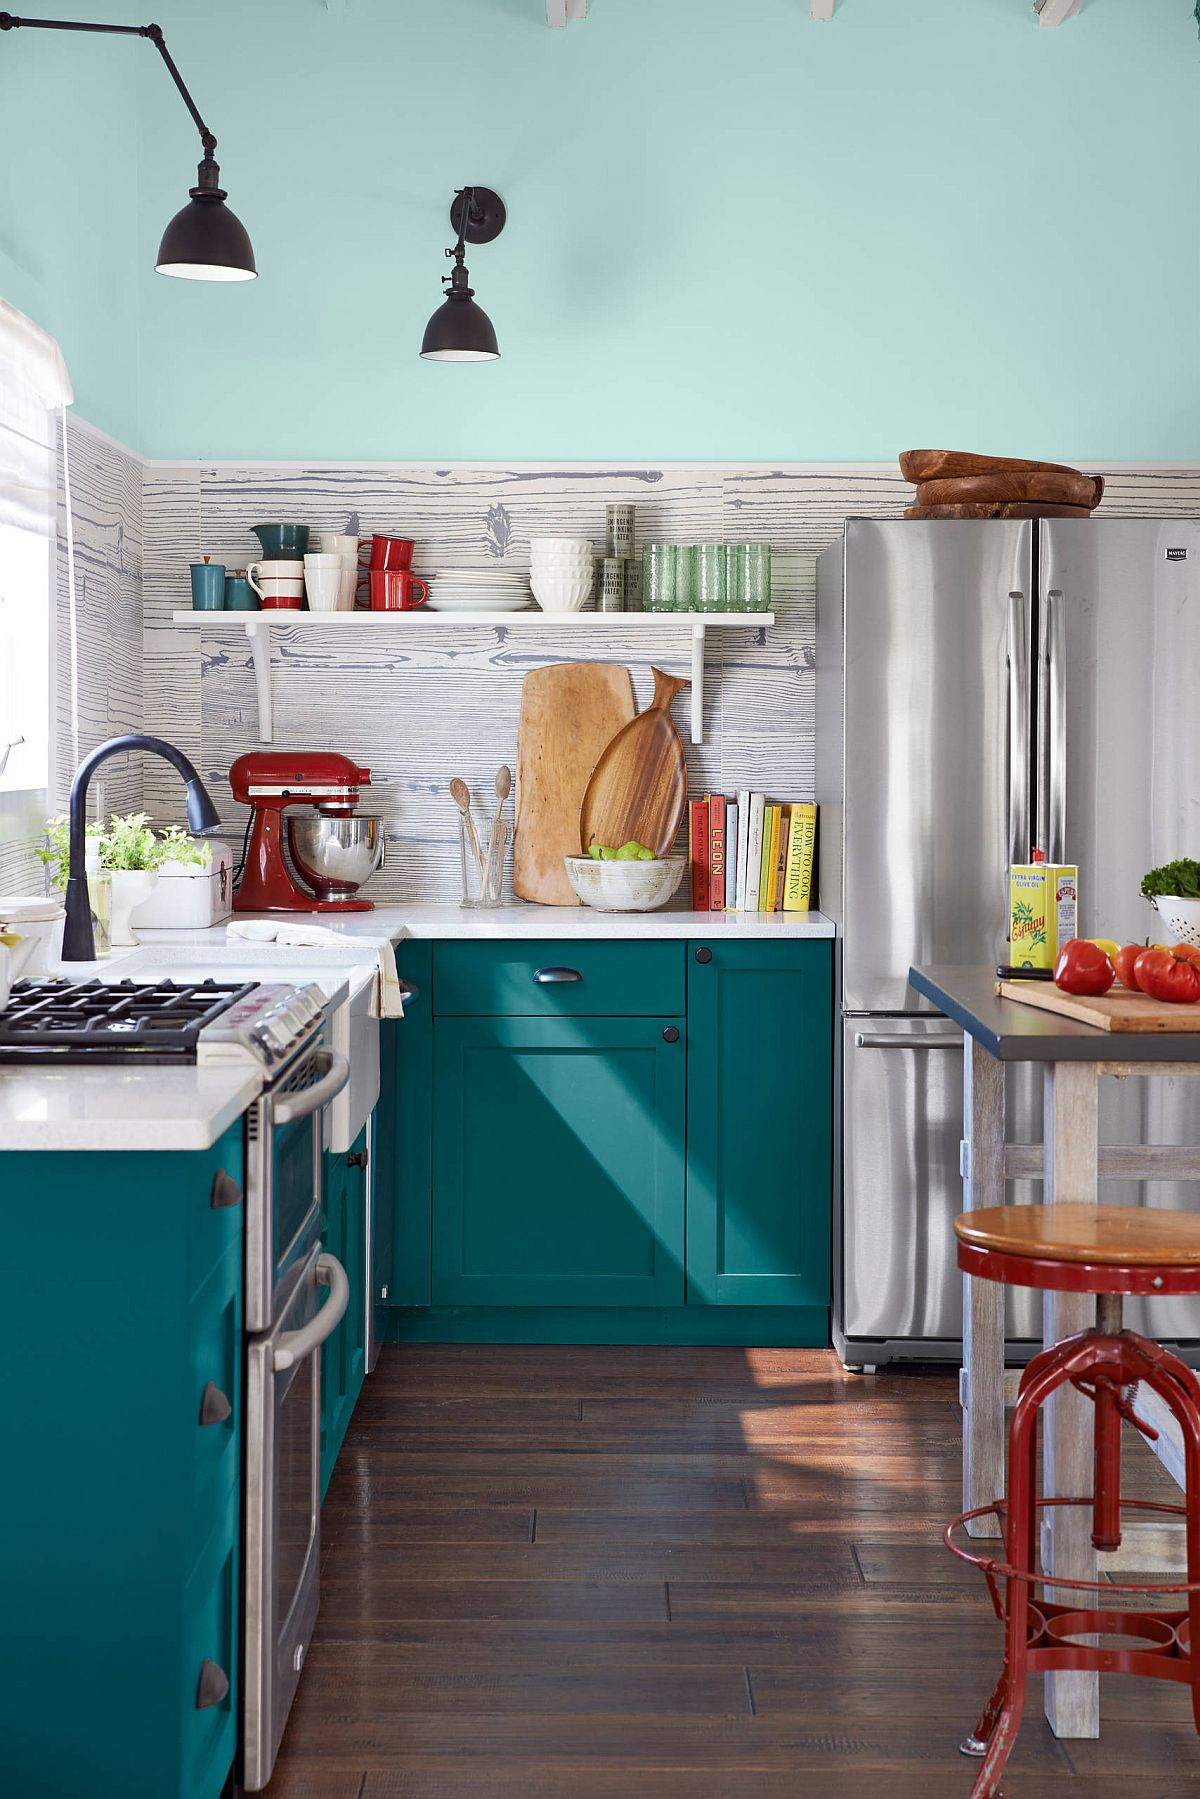 20 Best Small Kitchens from New York City that Inspire with Creativity